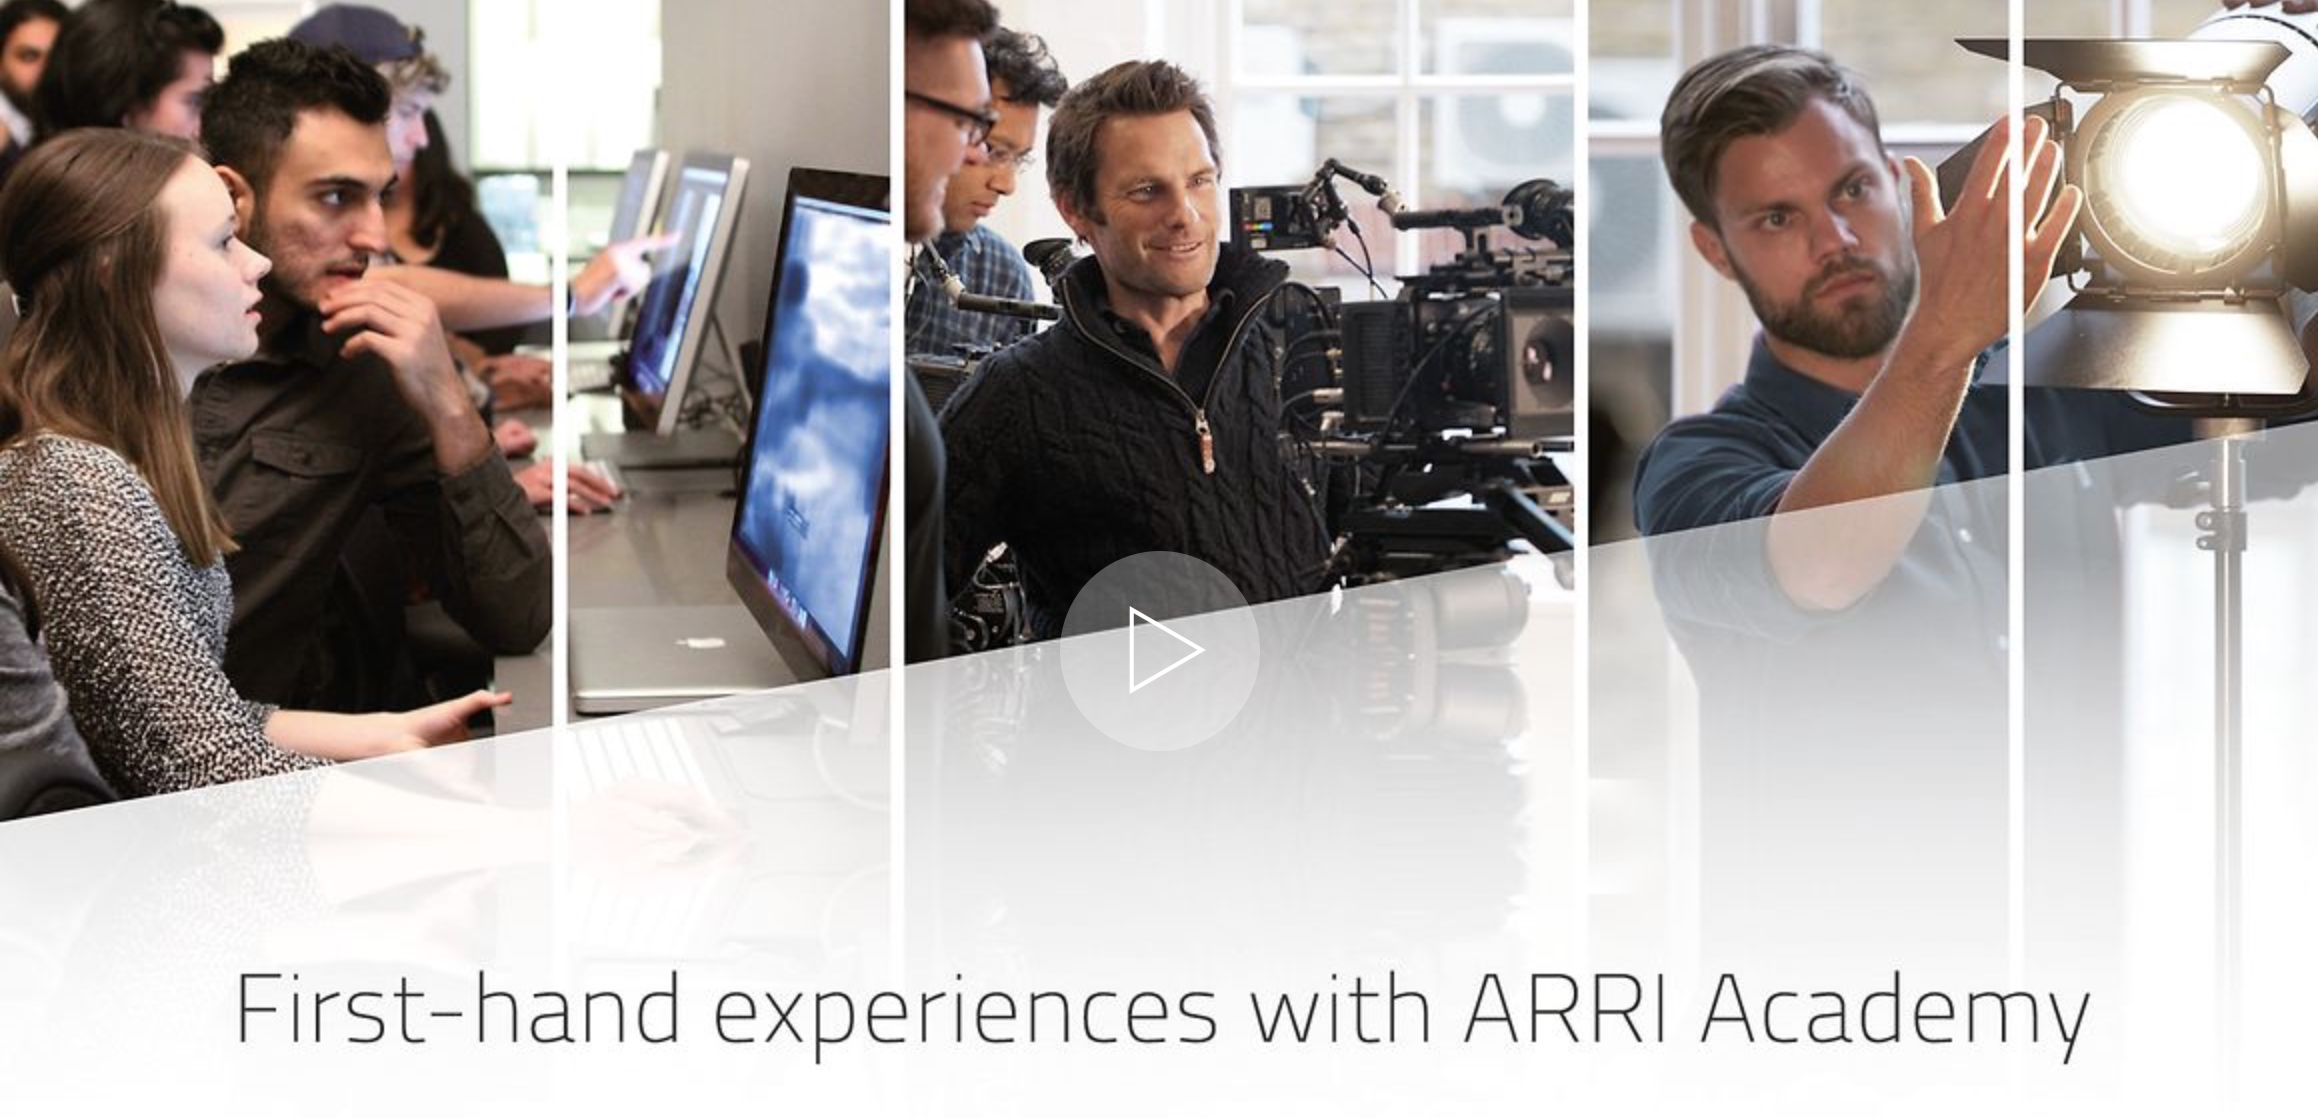 First-hand experiences with ARRI Academy